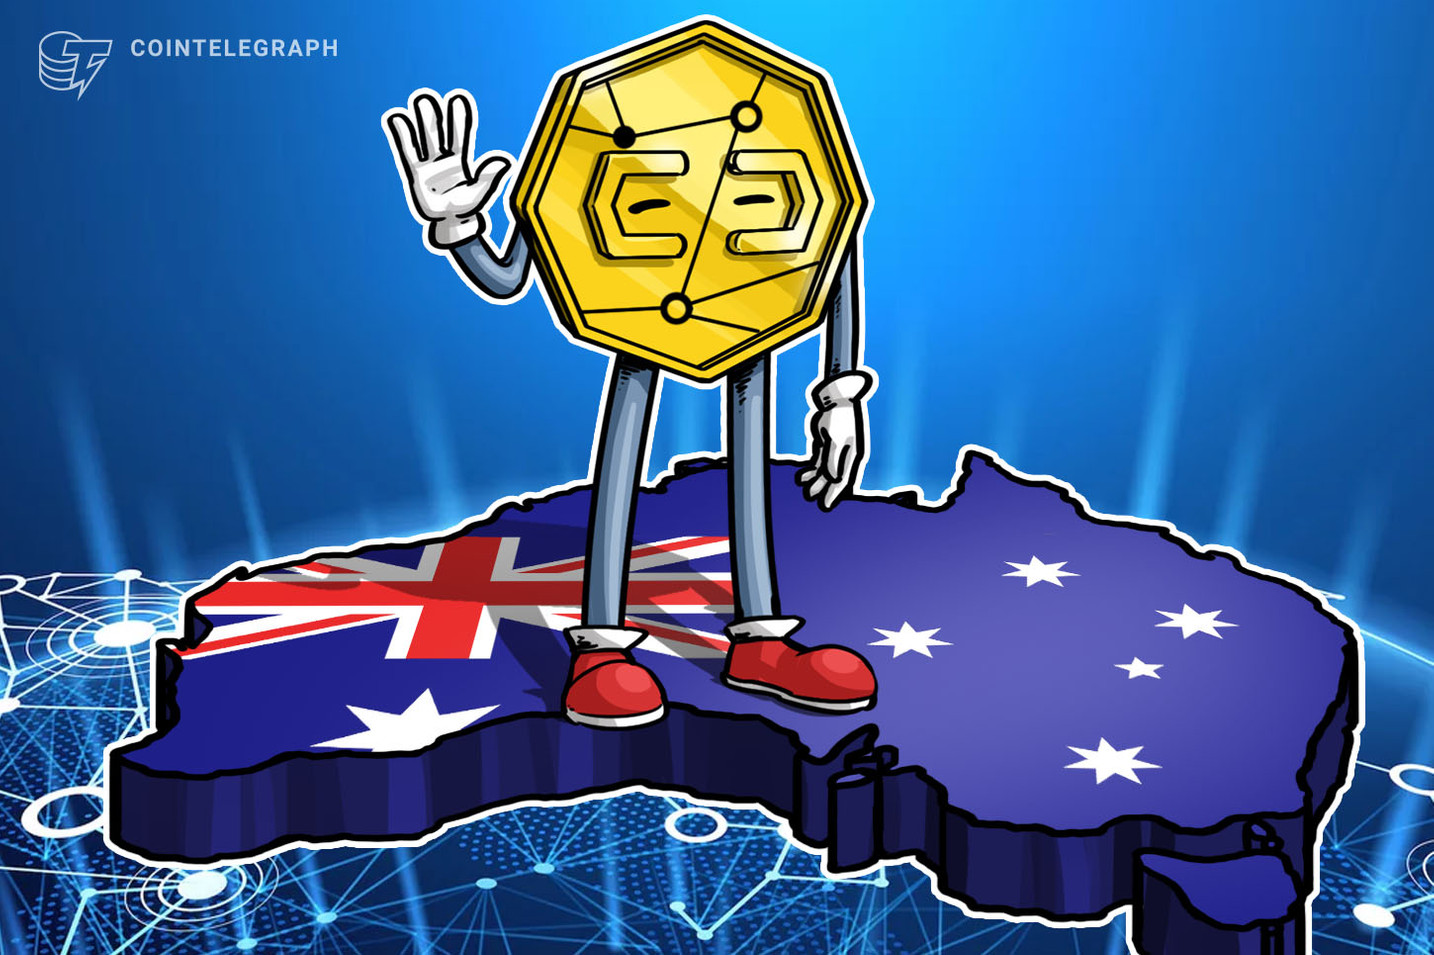 Australian Draft Bill Excludes Digital Currency From New Cash Payment Limit